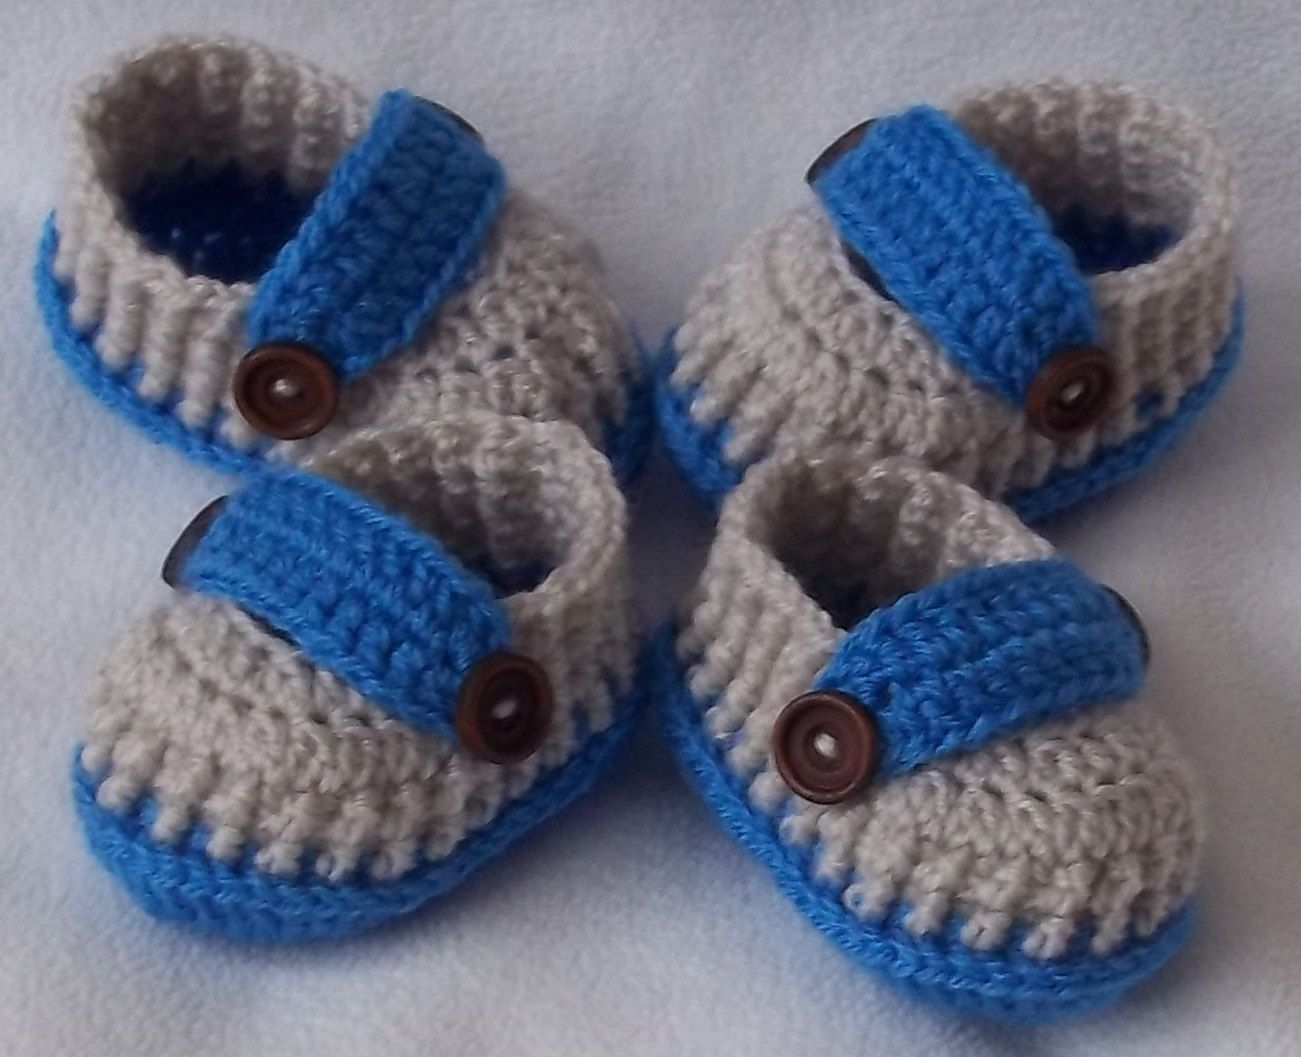 97ba96bd2 Crochet baby shoes set for twins for newborn